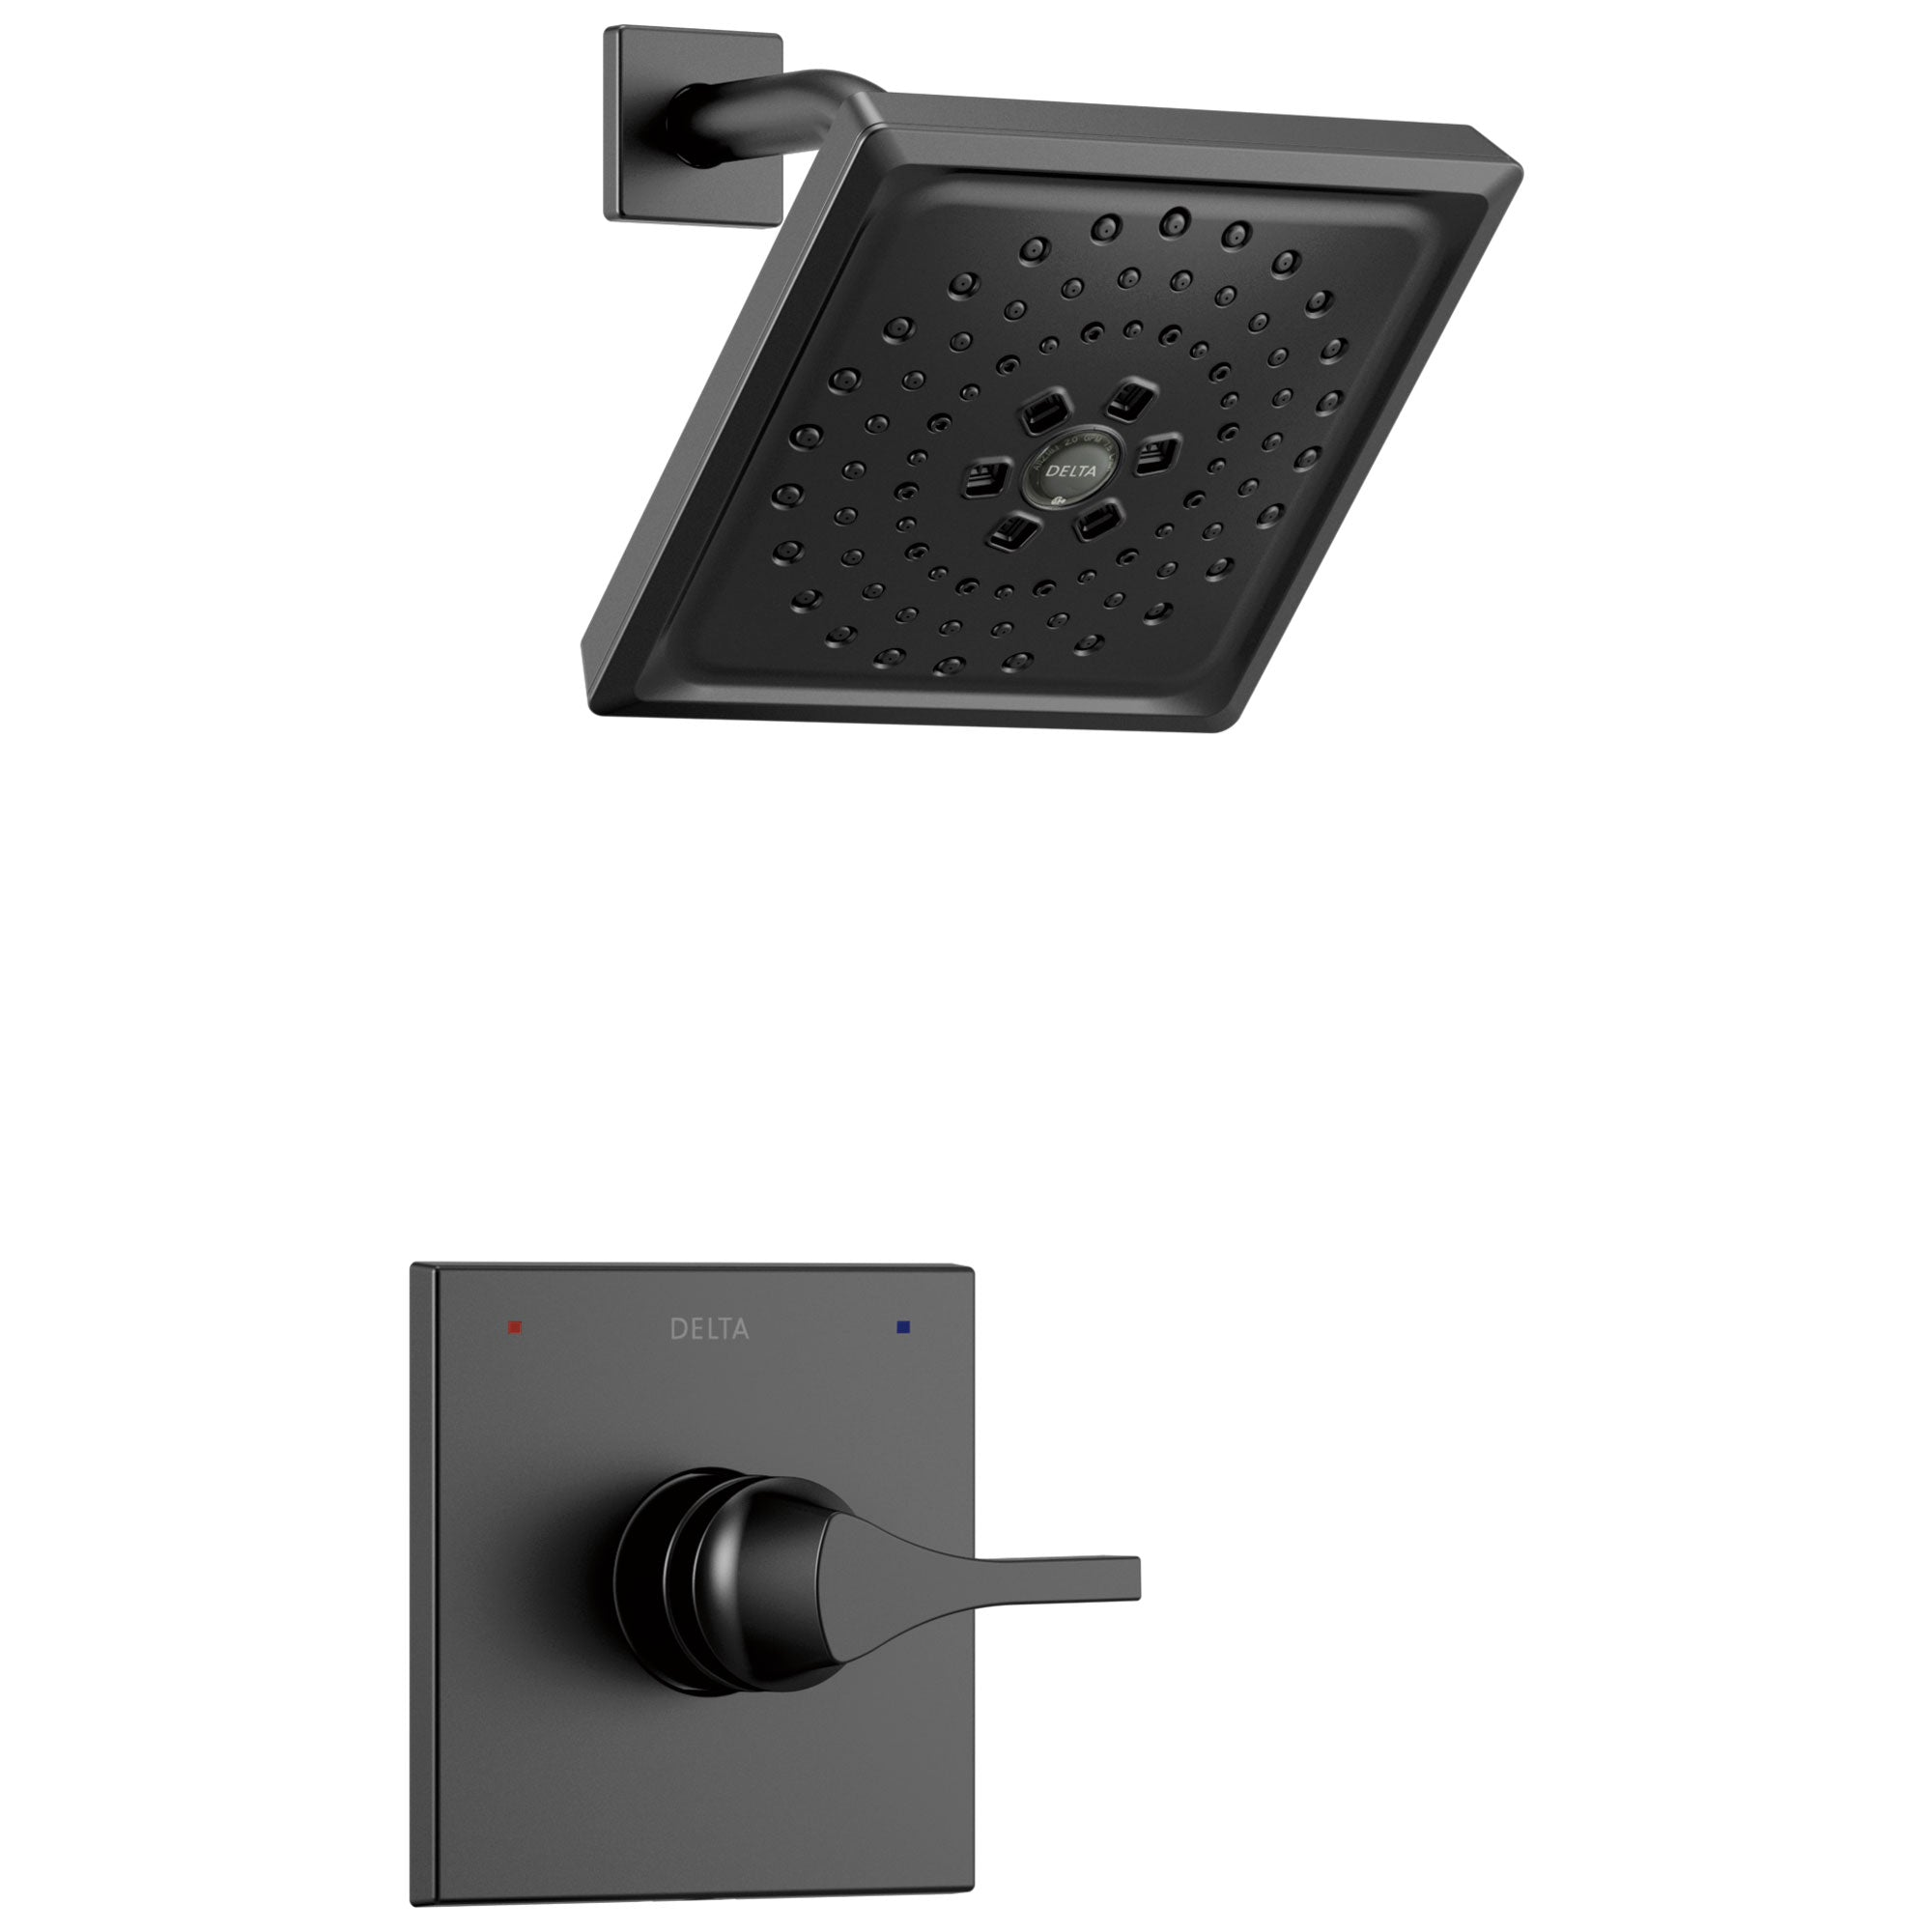 Delta Zura Matte Black Finish Monitor 14 Series H2Okinetic Shower only Faucet Includes Handle, Cartridge, and Valve without Stops D3640V